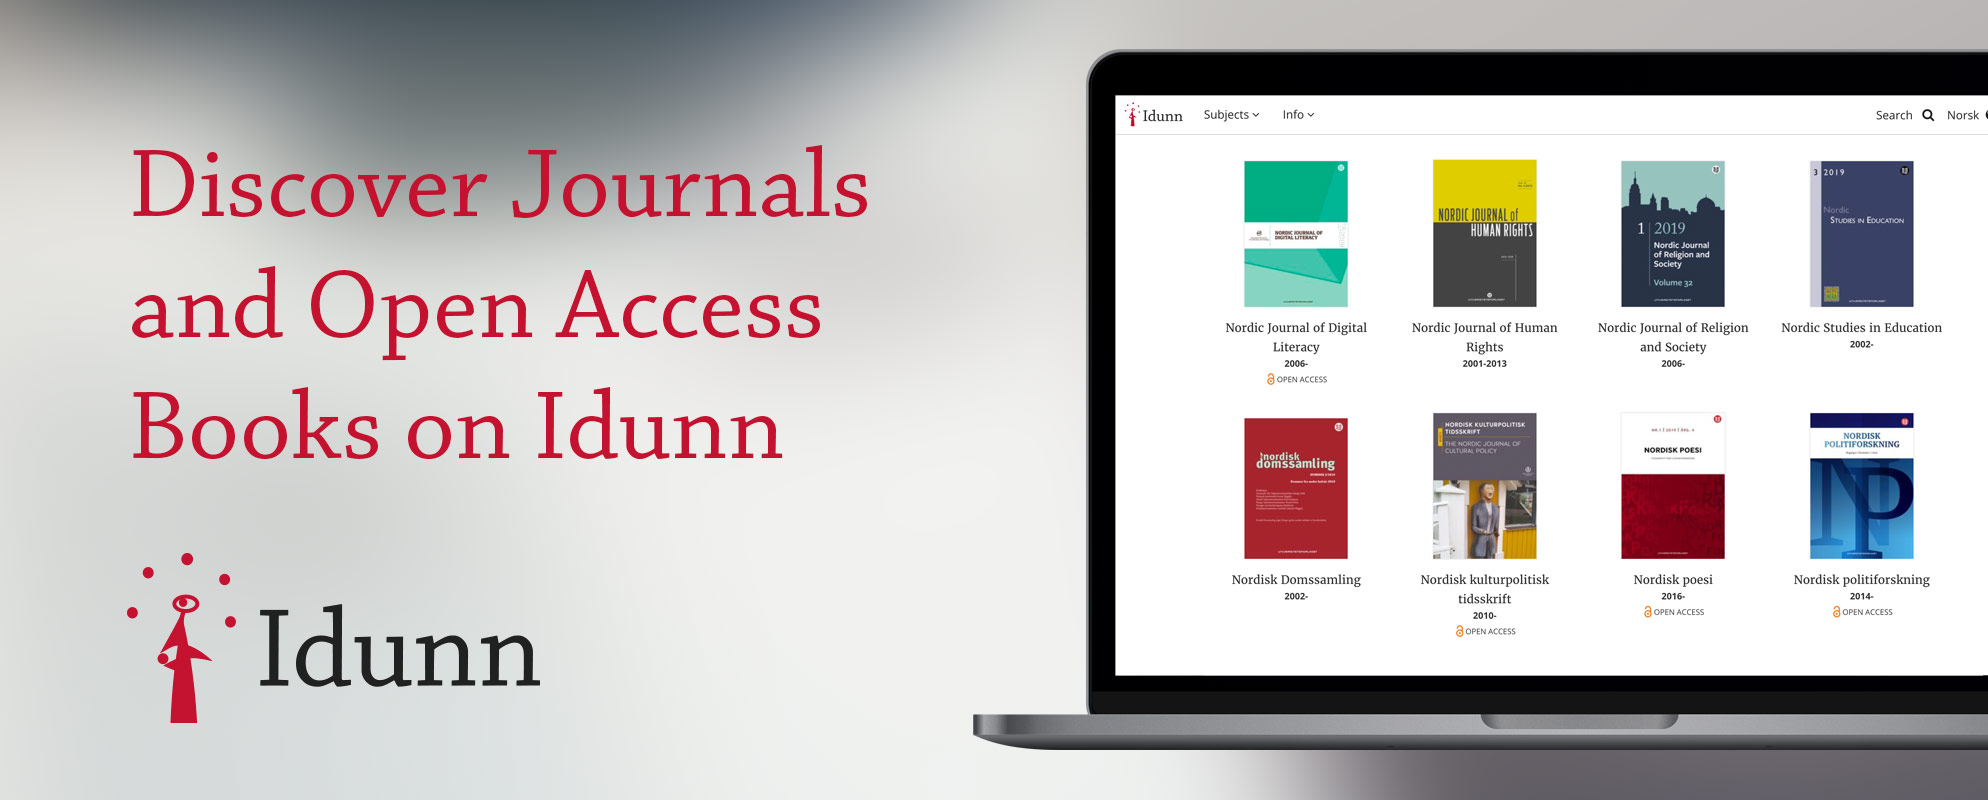 Discover Journals and Open Access Books on Idunn